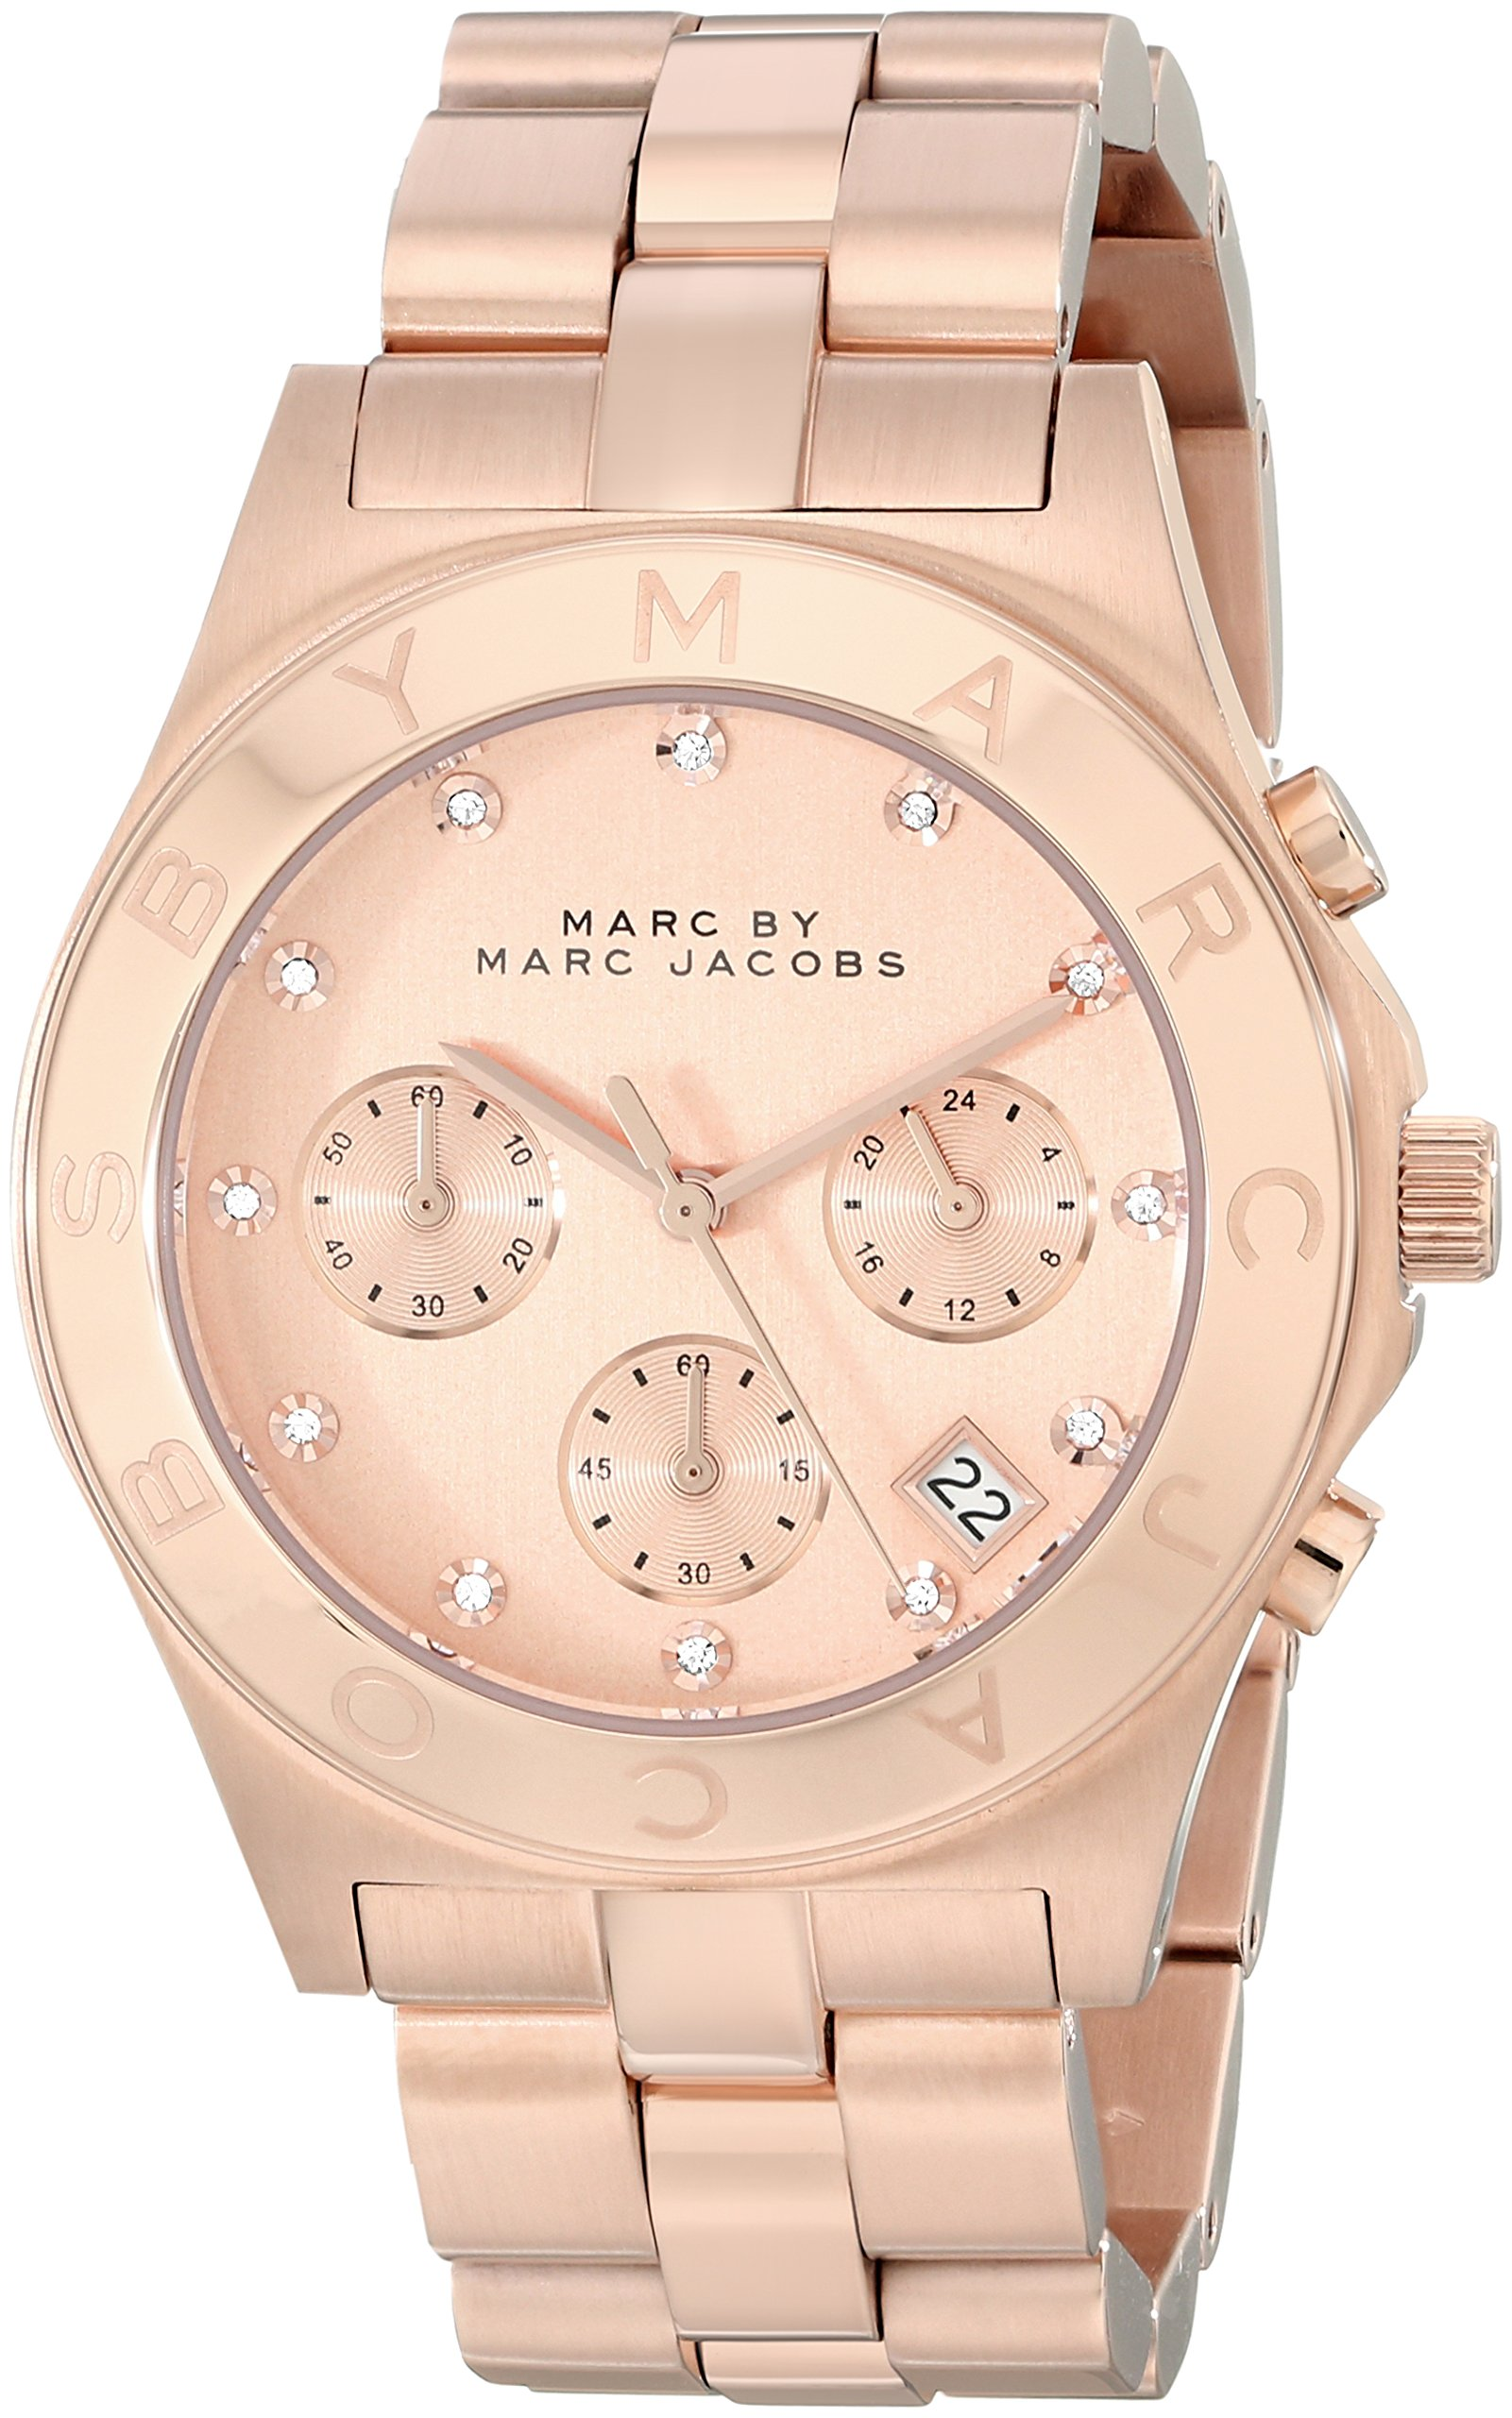 Marc by Marc Jacobs Women's Large Blade Chrono Watch, Rose Gold, One Size